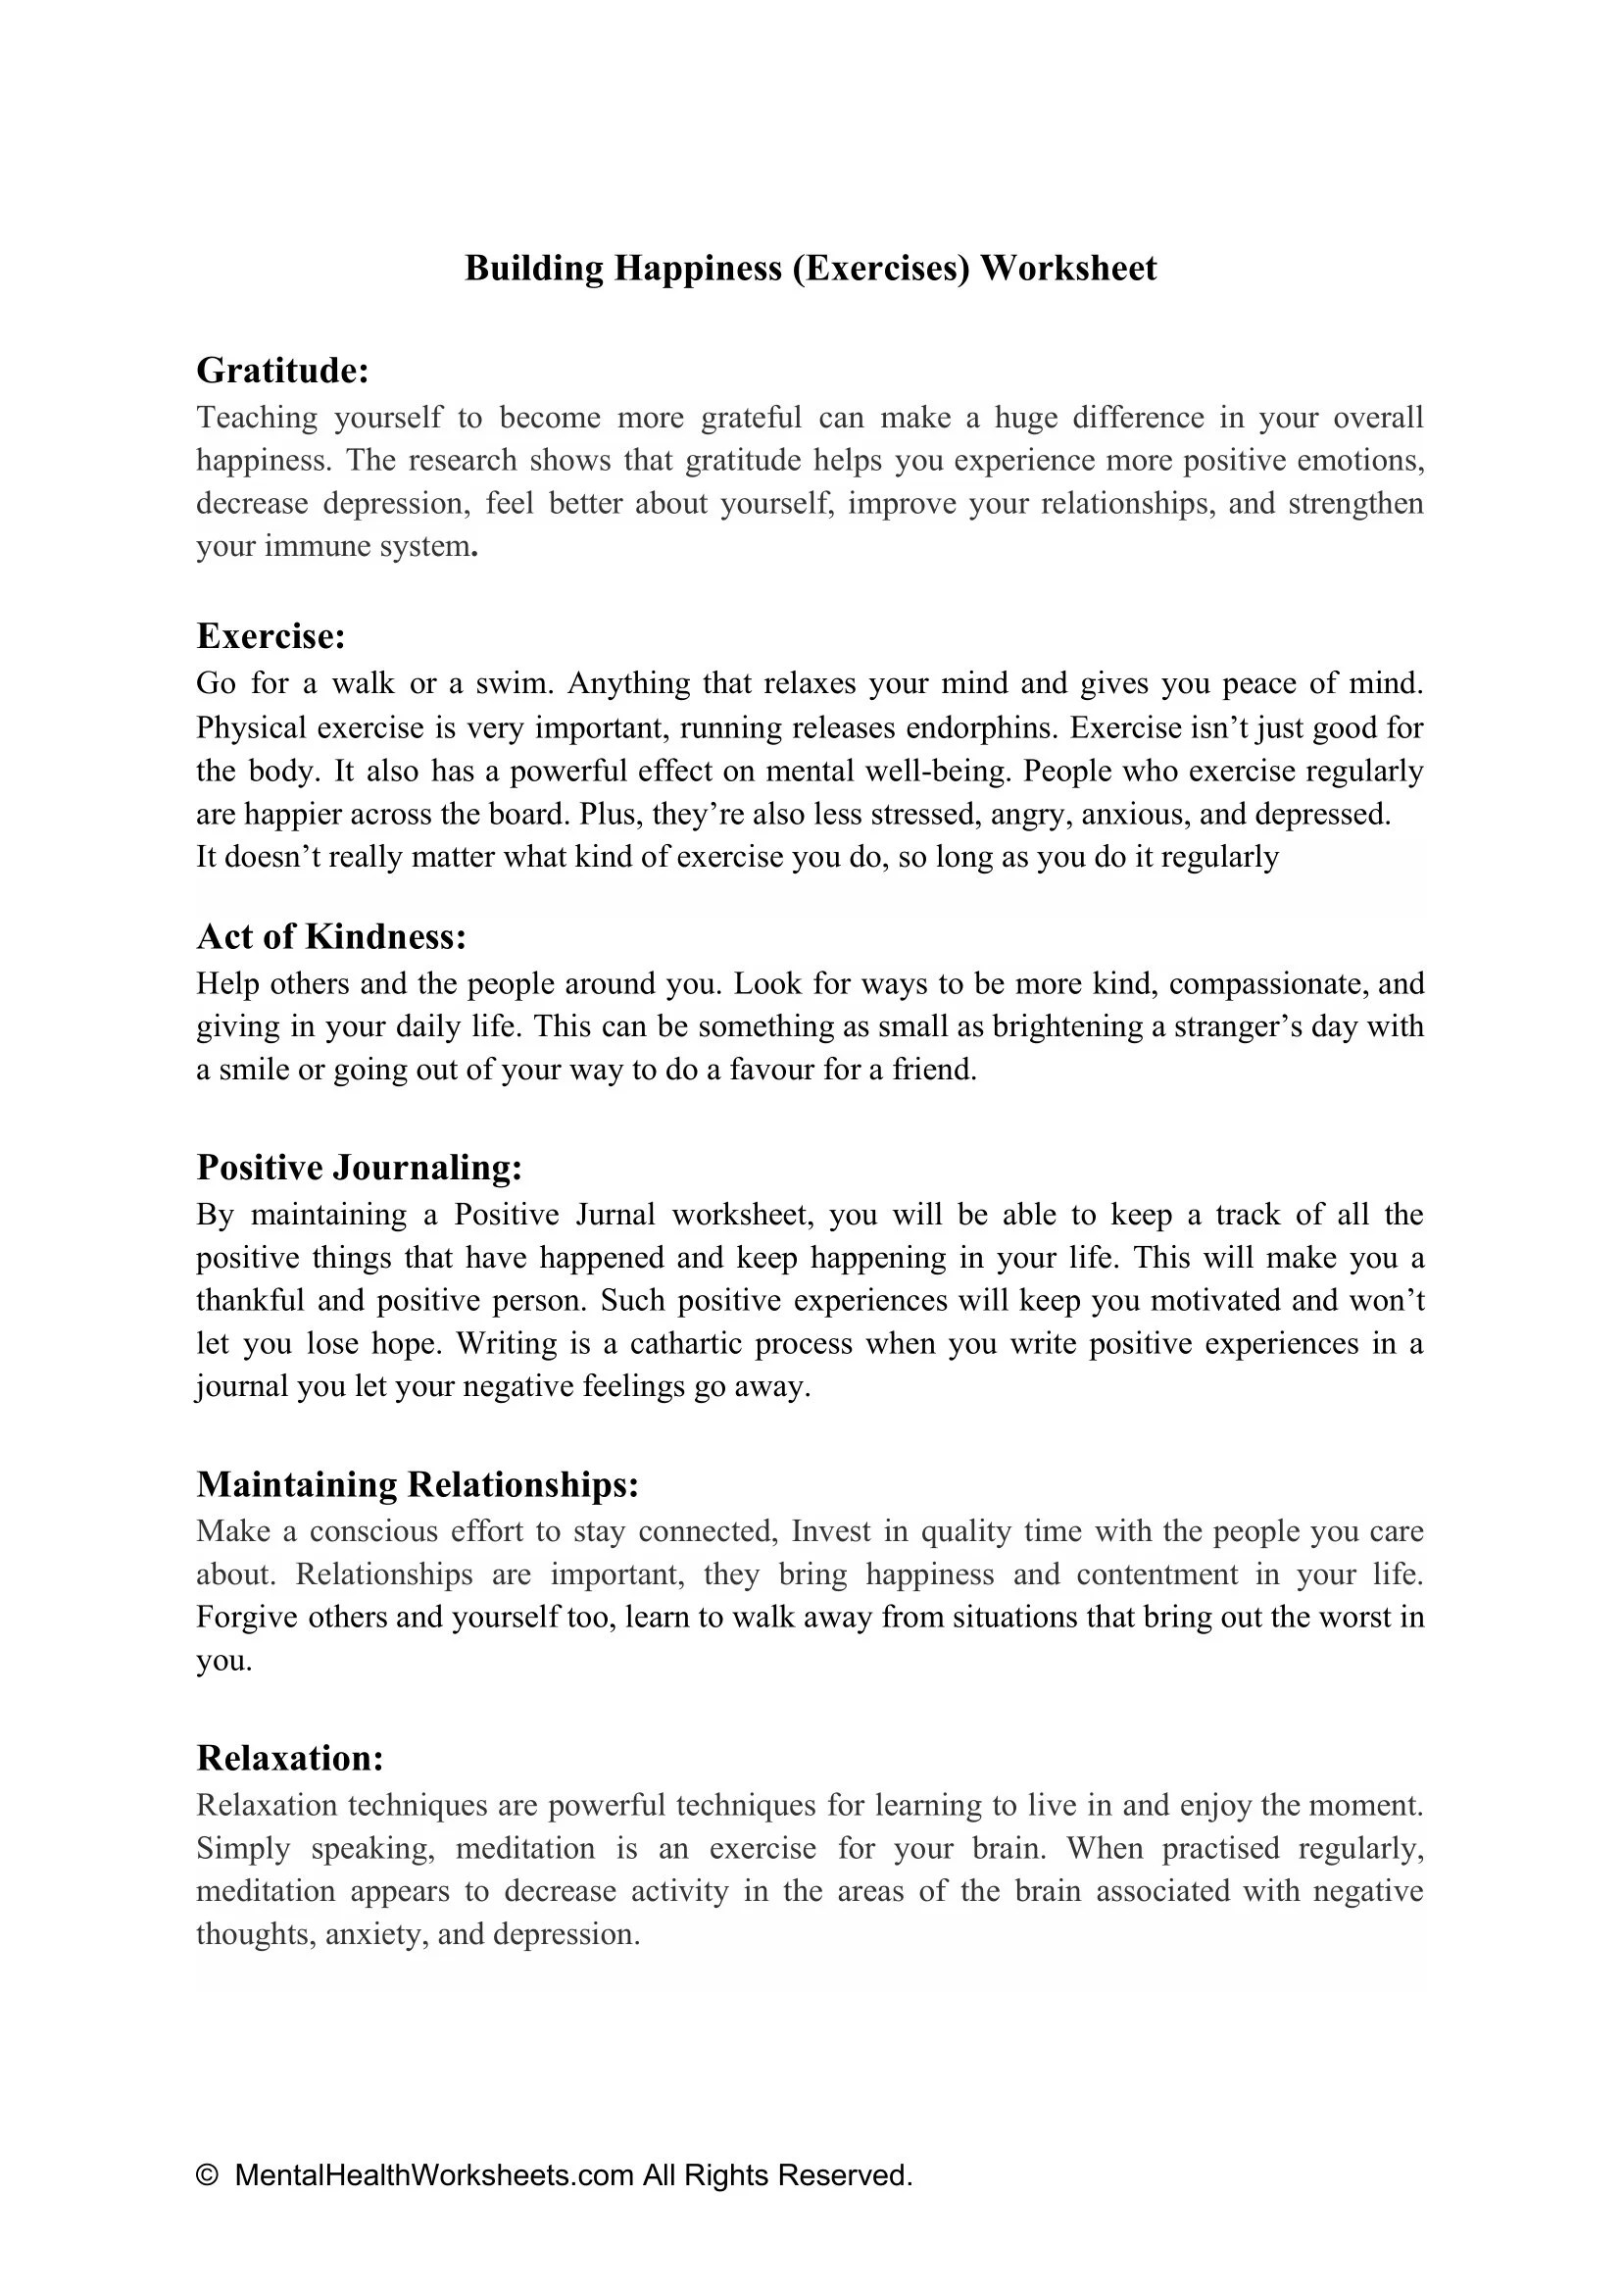 Building Happiness Exercises Worksheet